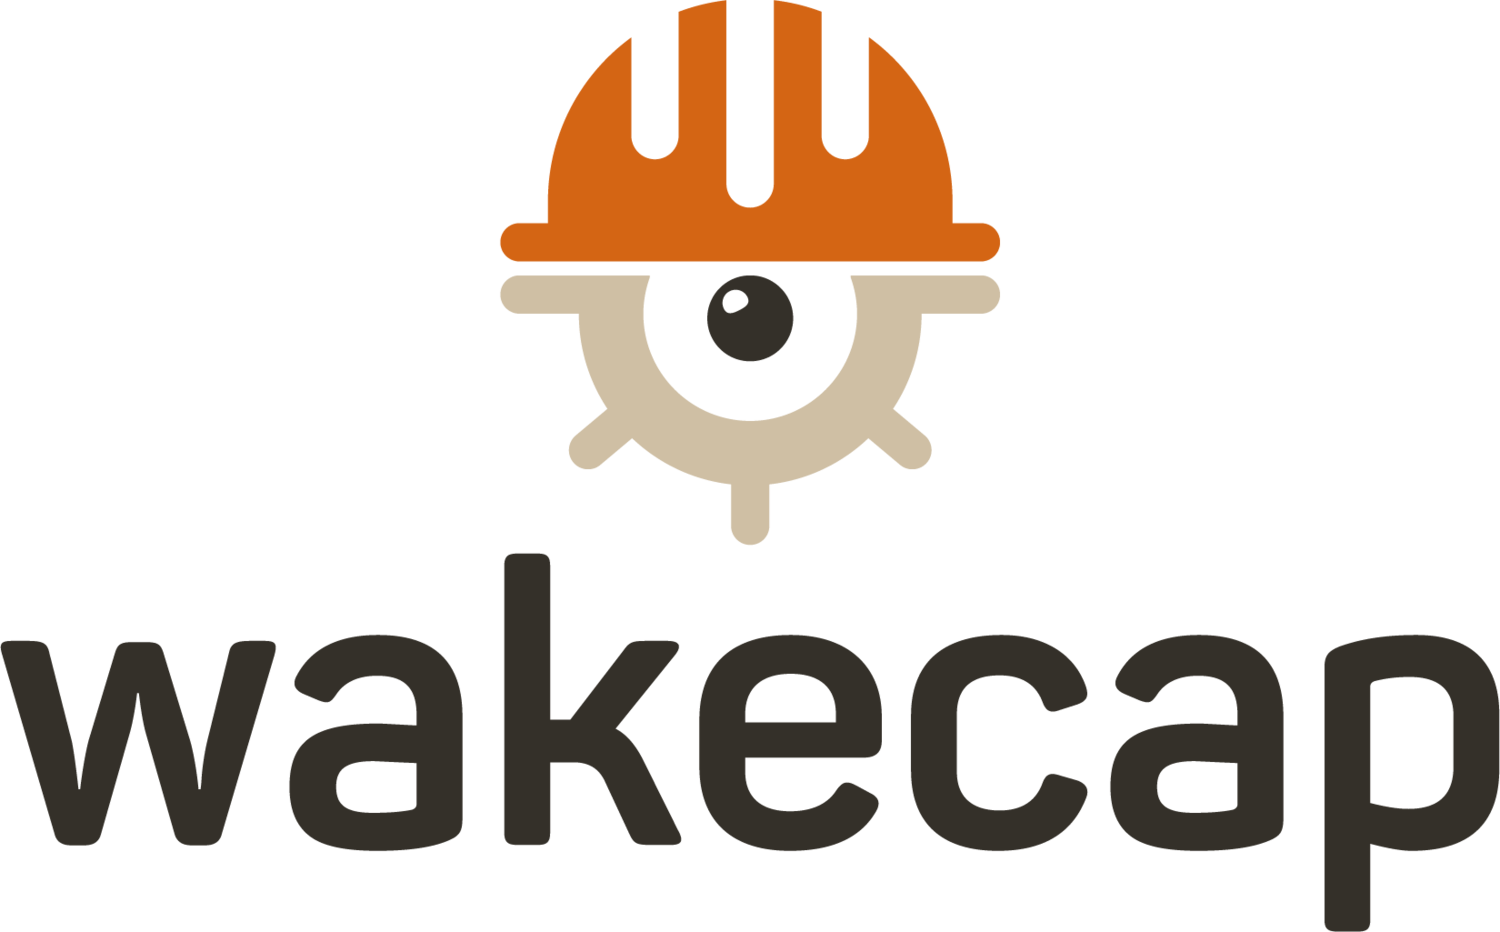 WakeCap Technologies - an IoT based enterprise solution for construction sites